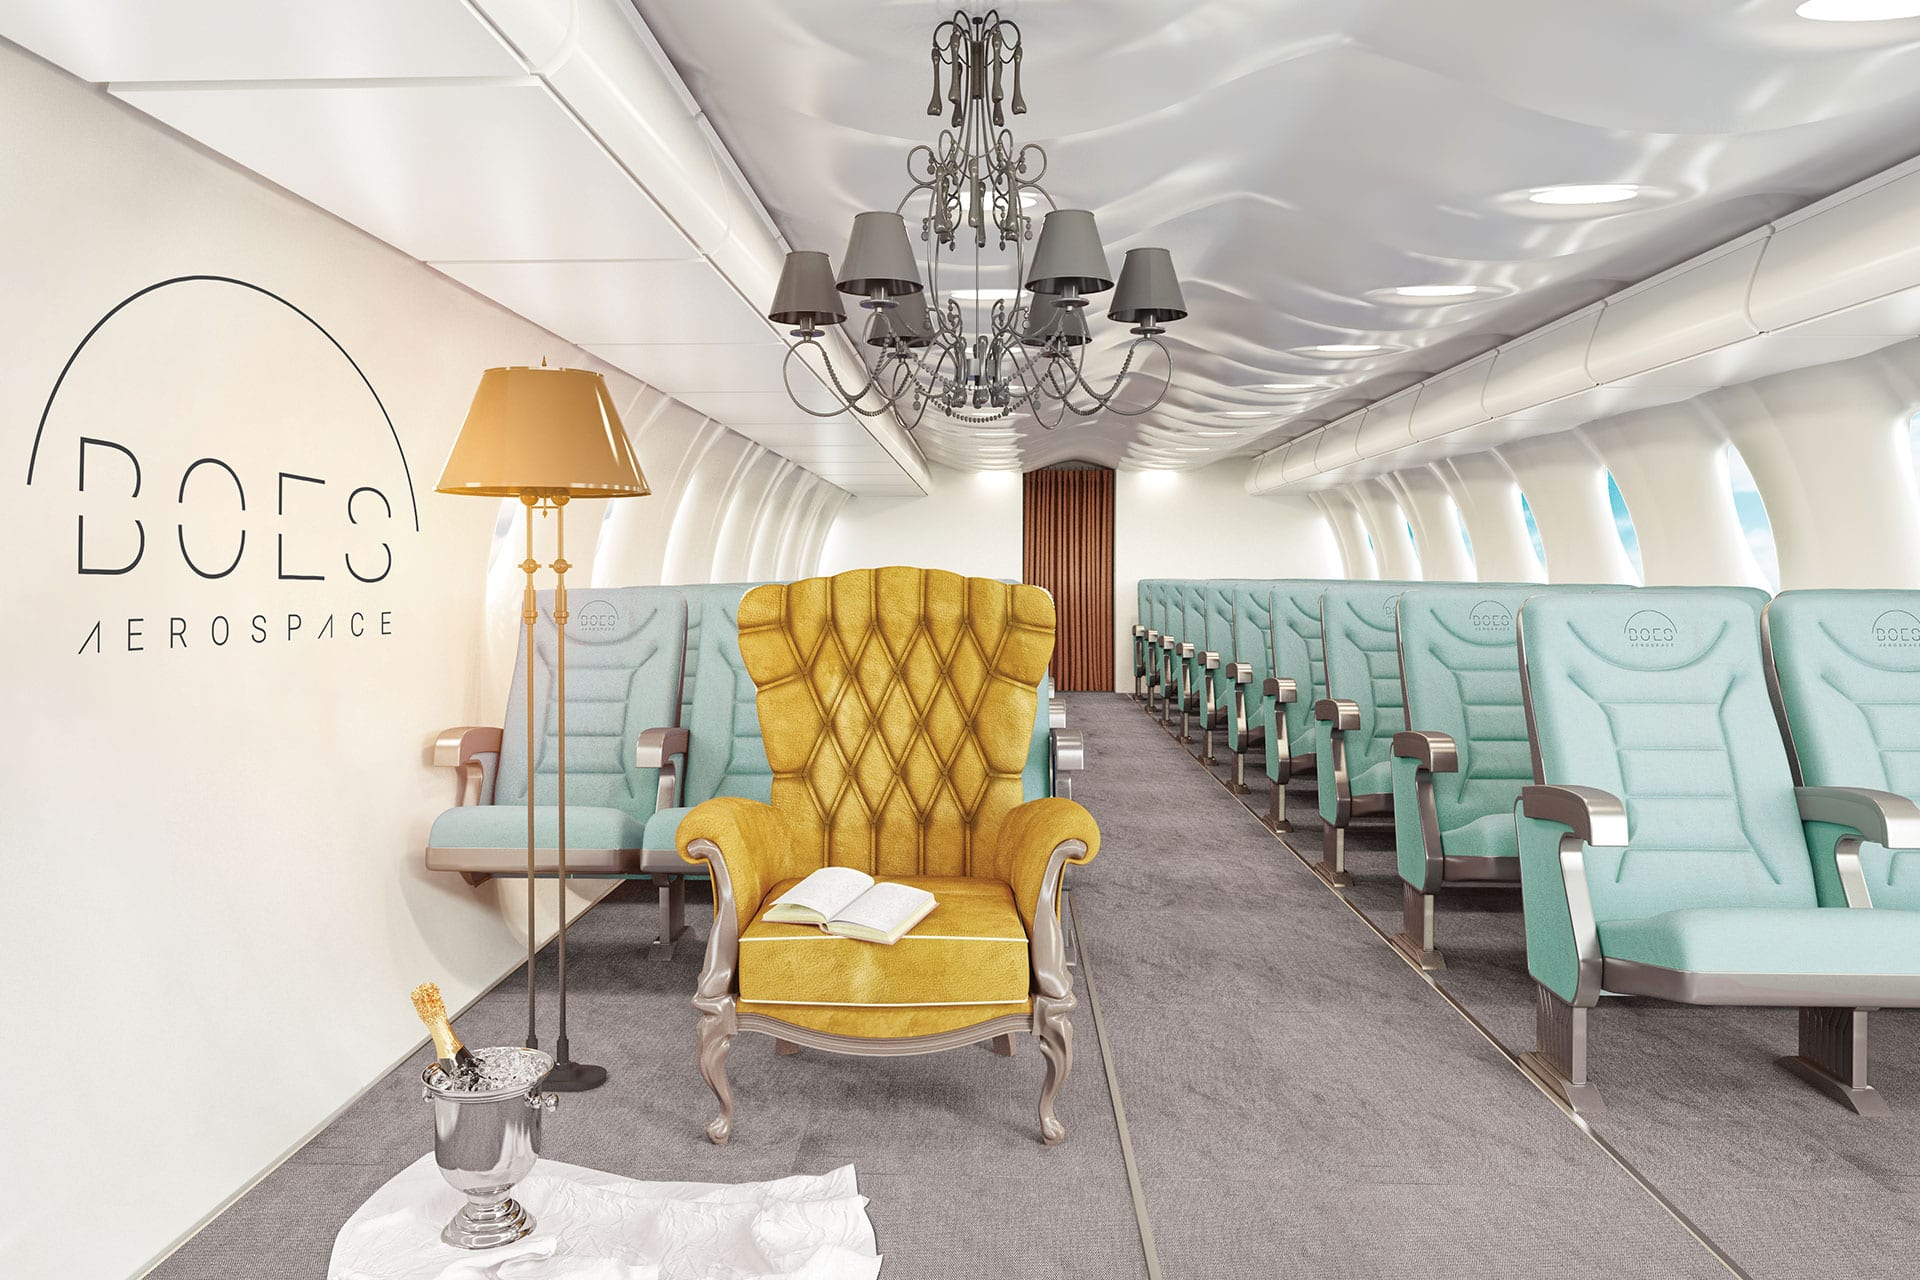 innovative cabin interior design | BOES Aerospace | Innovative cabin completion for airlines